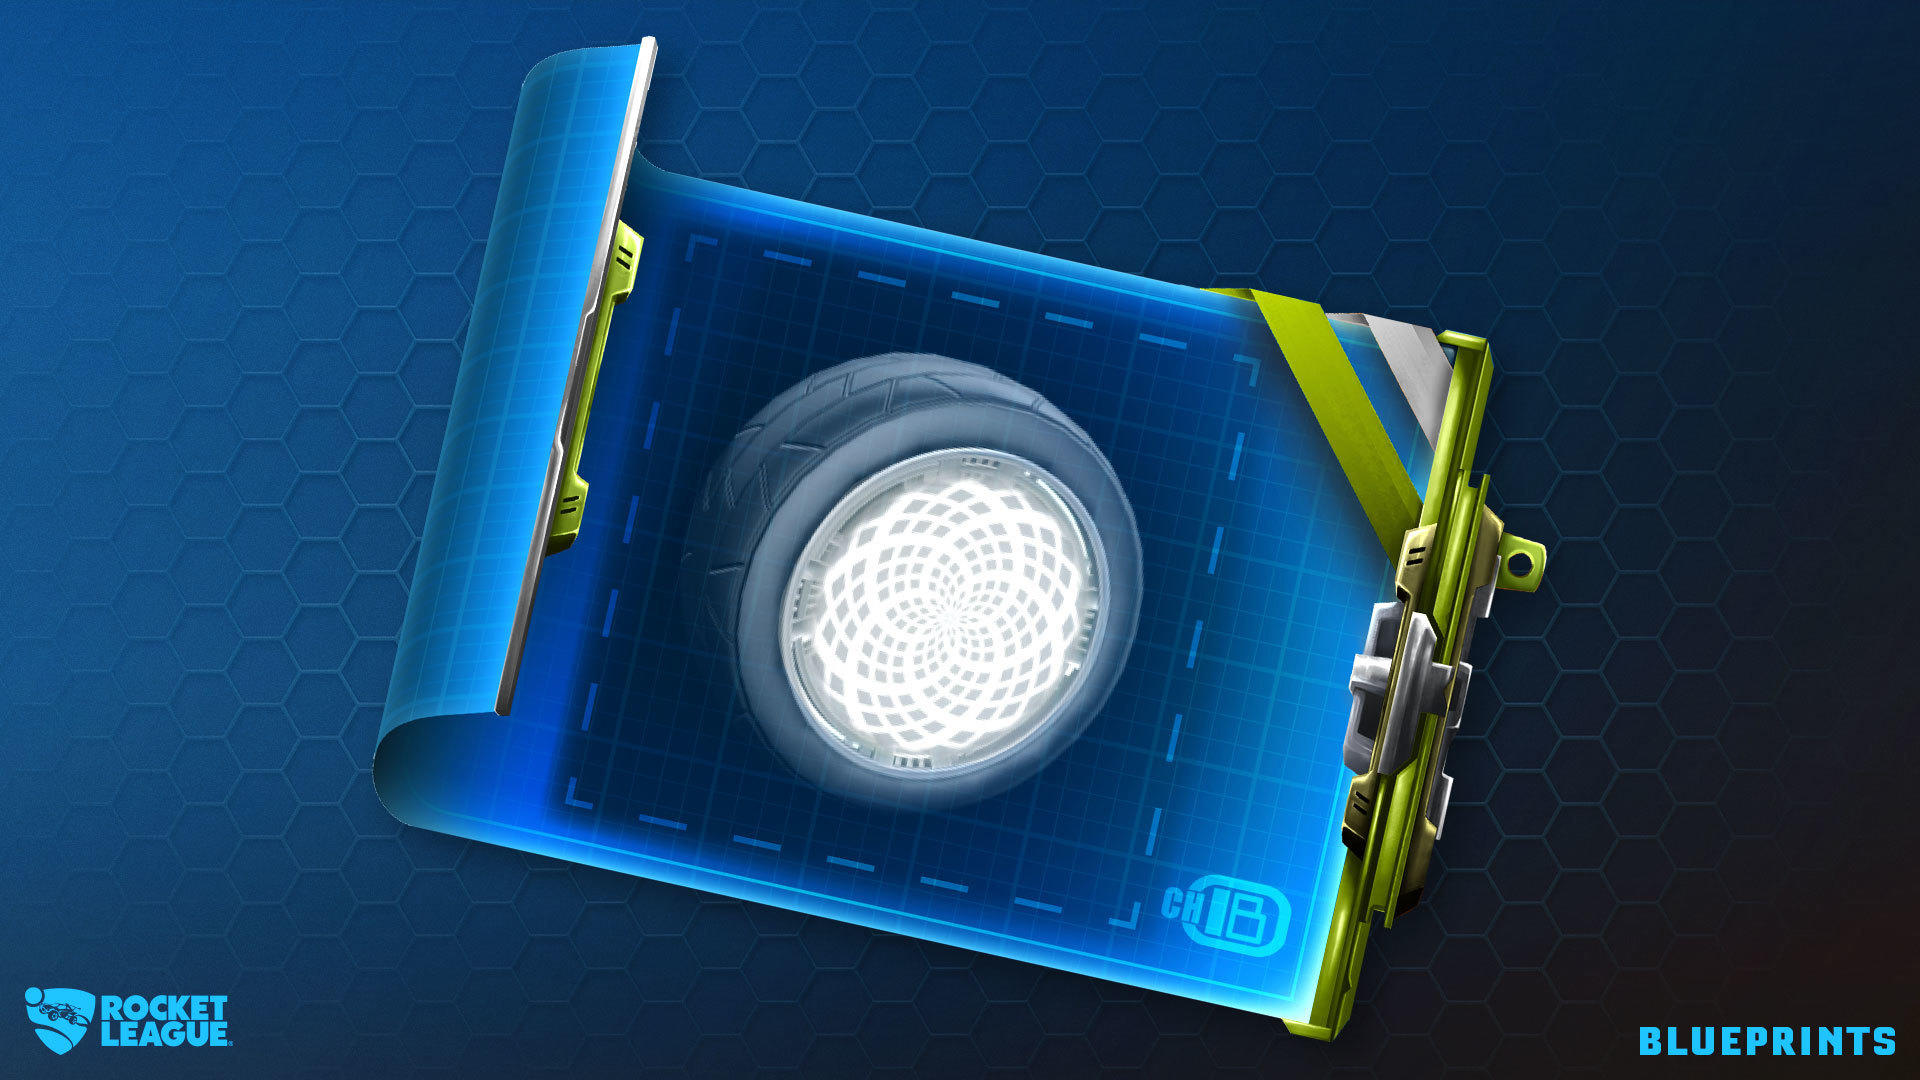 Rocket League Blurprints